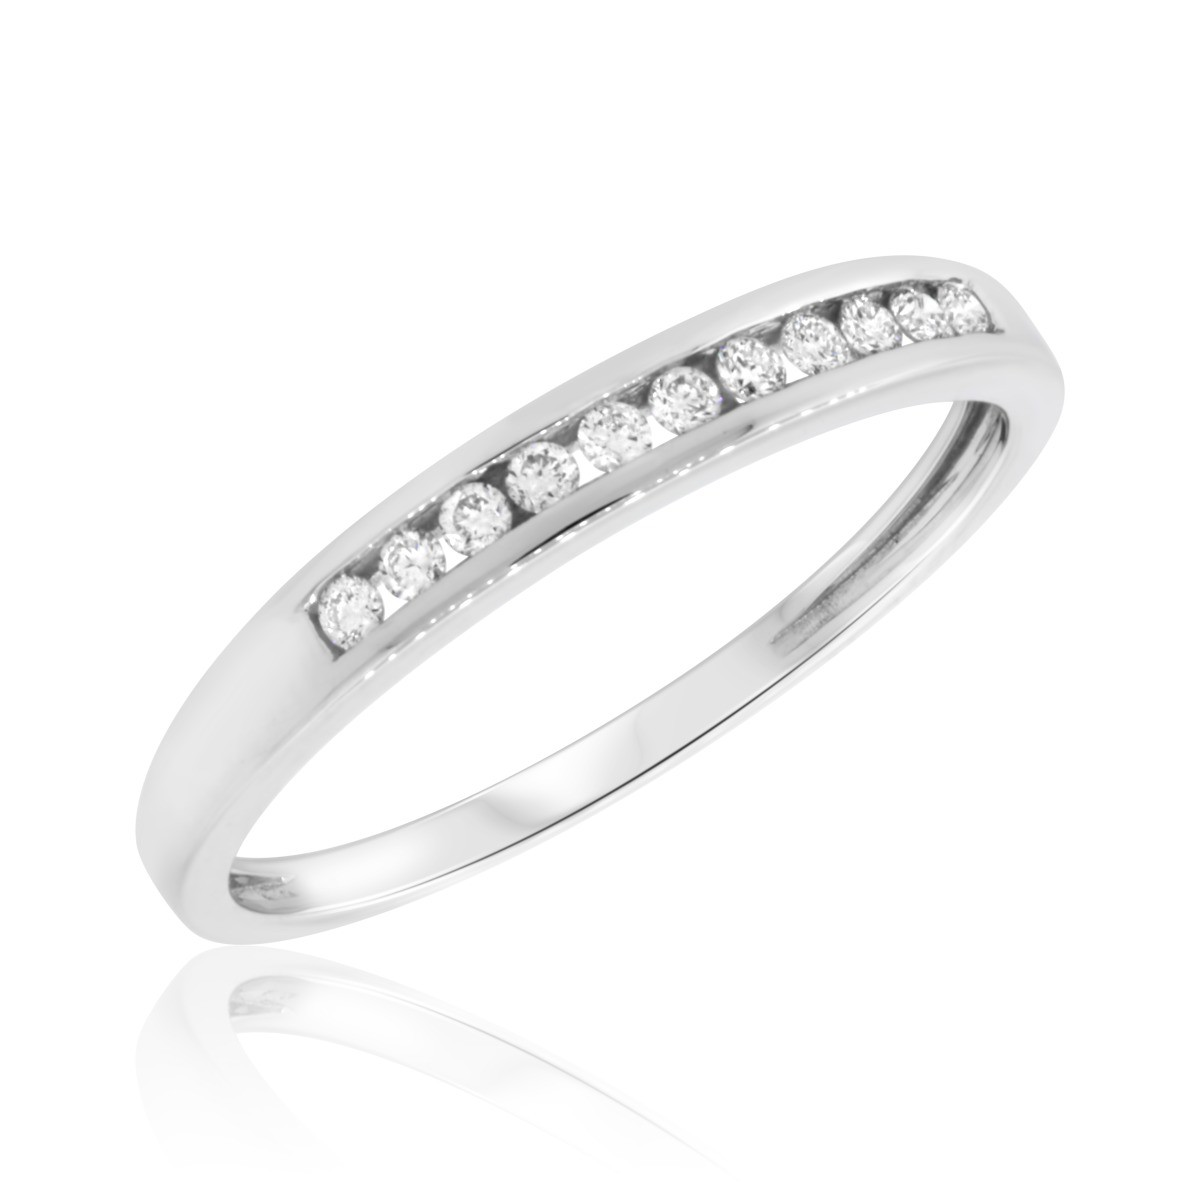 1/7 CT. T.W. Diamond Ladies Wedding Band  14K White Gold